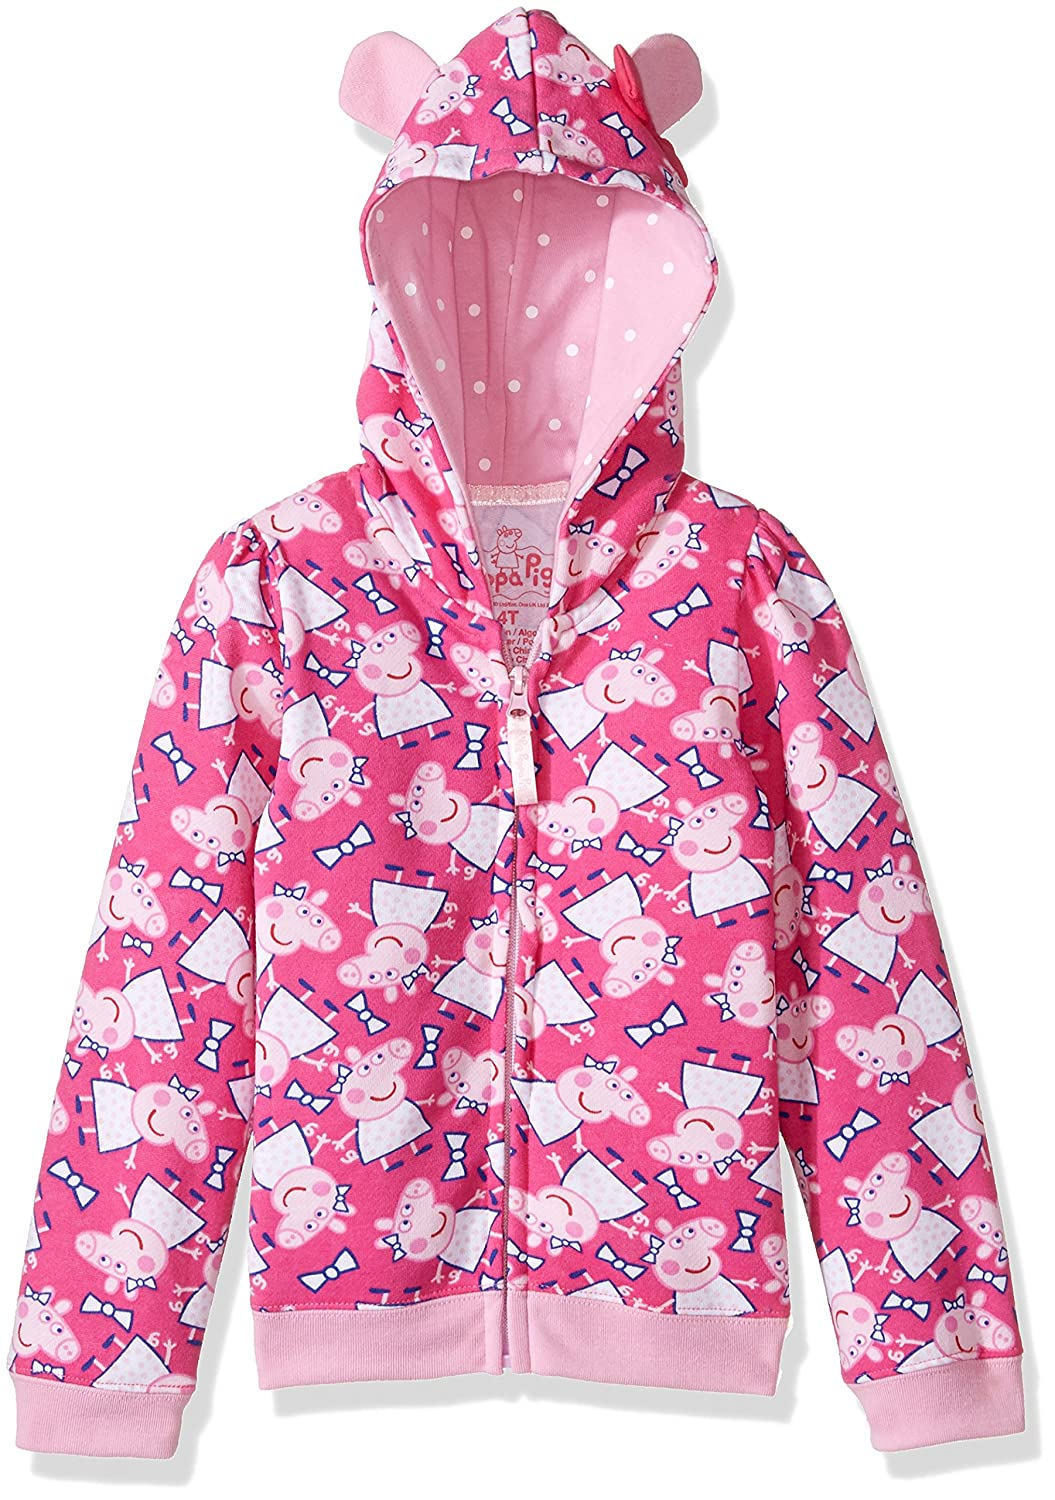 Peppa Pig Toddler Girls' Clothing Shop (Multiple Styles), Hoodie